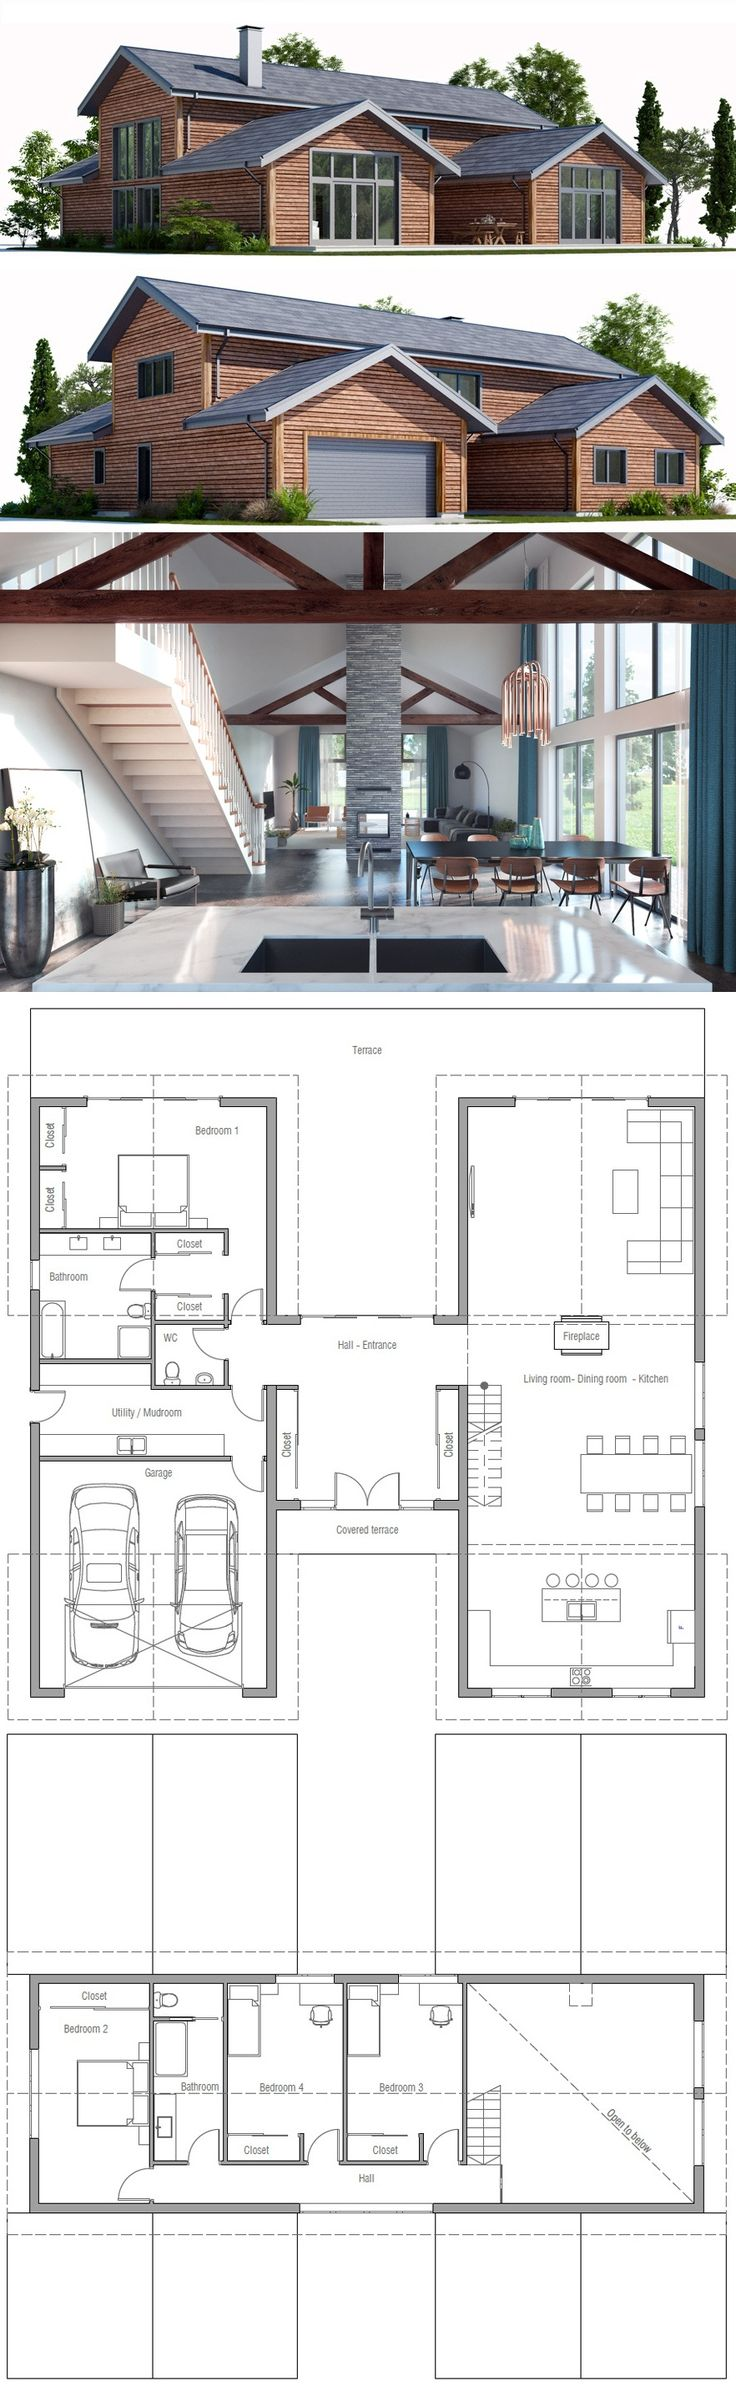 Would change up stairs to two bedrooms w/ larger closets and a bigger bathroom. Who Else Wants Simple Step-By-Step Plans To Design And Build A Container Home From Scratch? http://build-acontainerhome.blogspot.com?prod=C7hS68sf